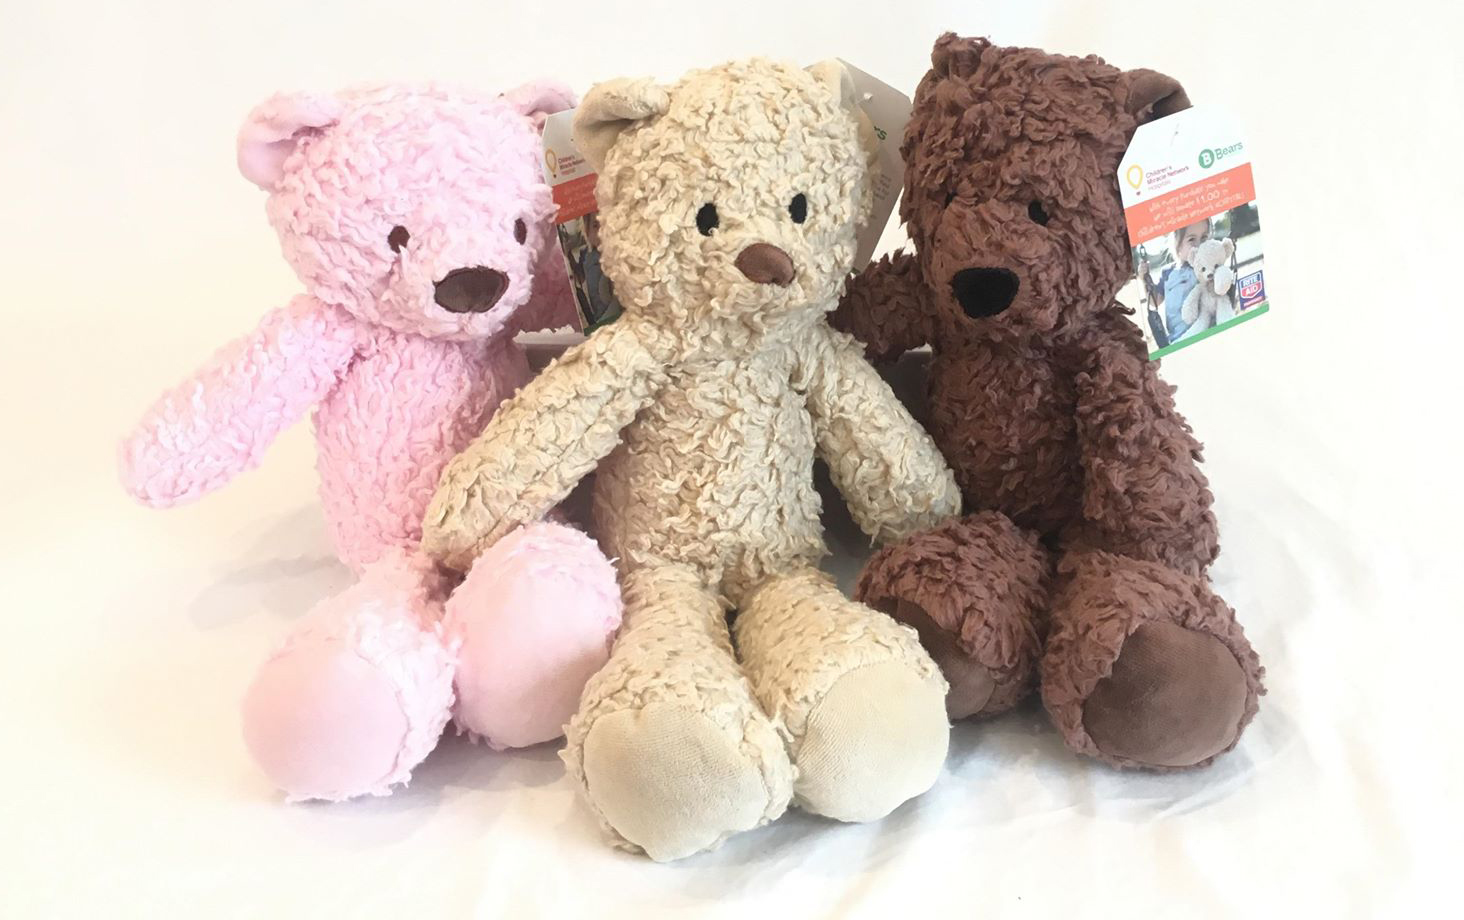 Cuddly Bears For Humanity and Children's Miracle Network Hospitals